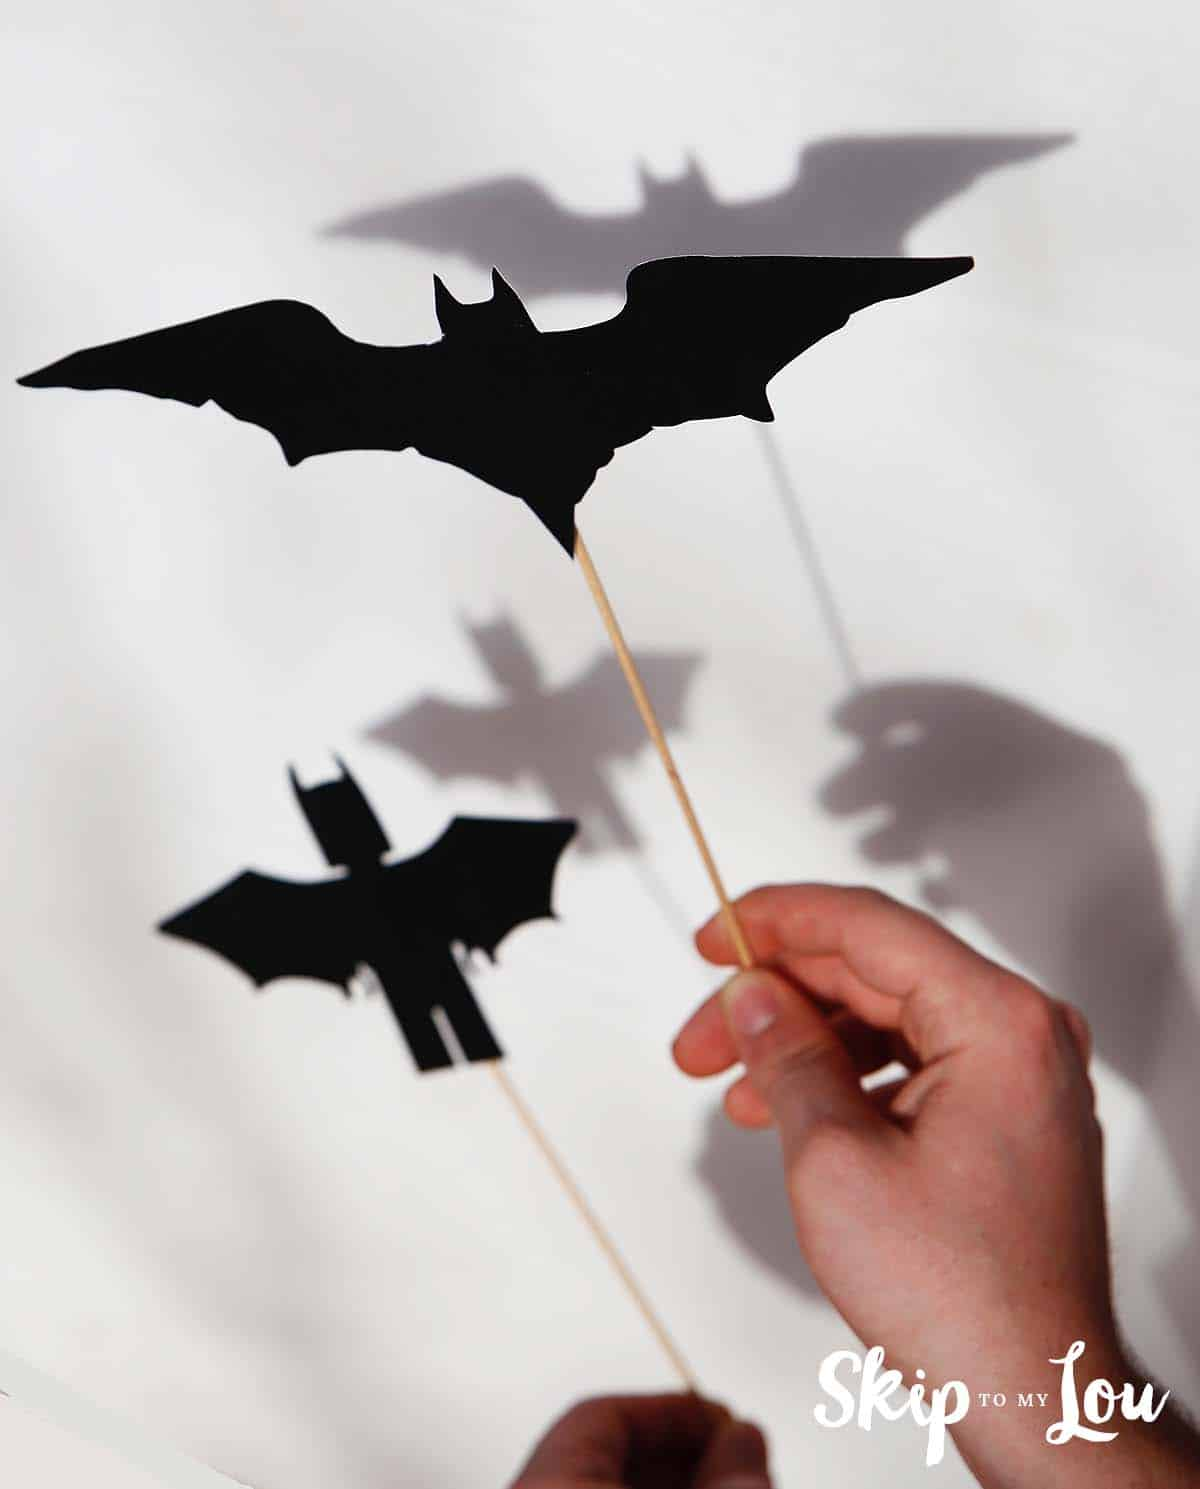 lego batman shadow puppets